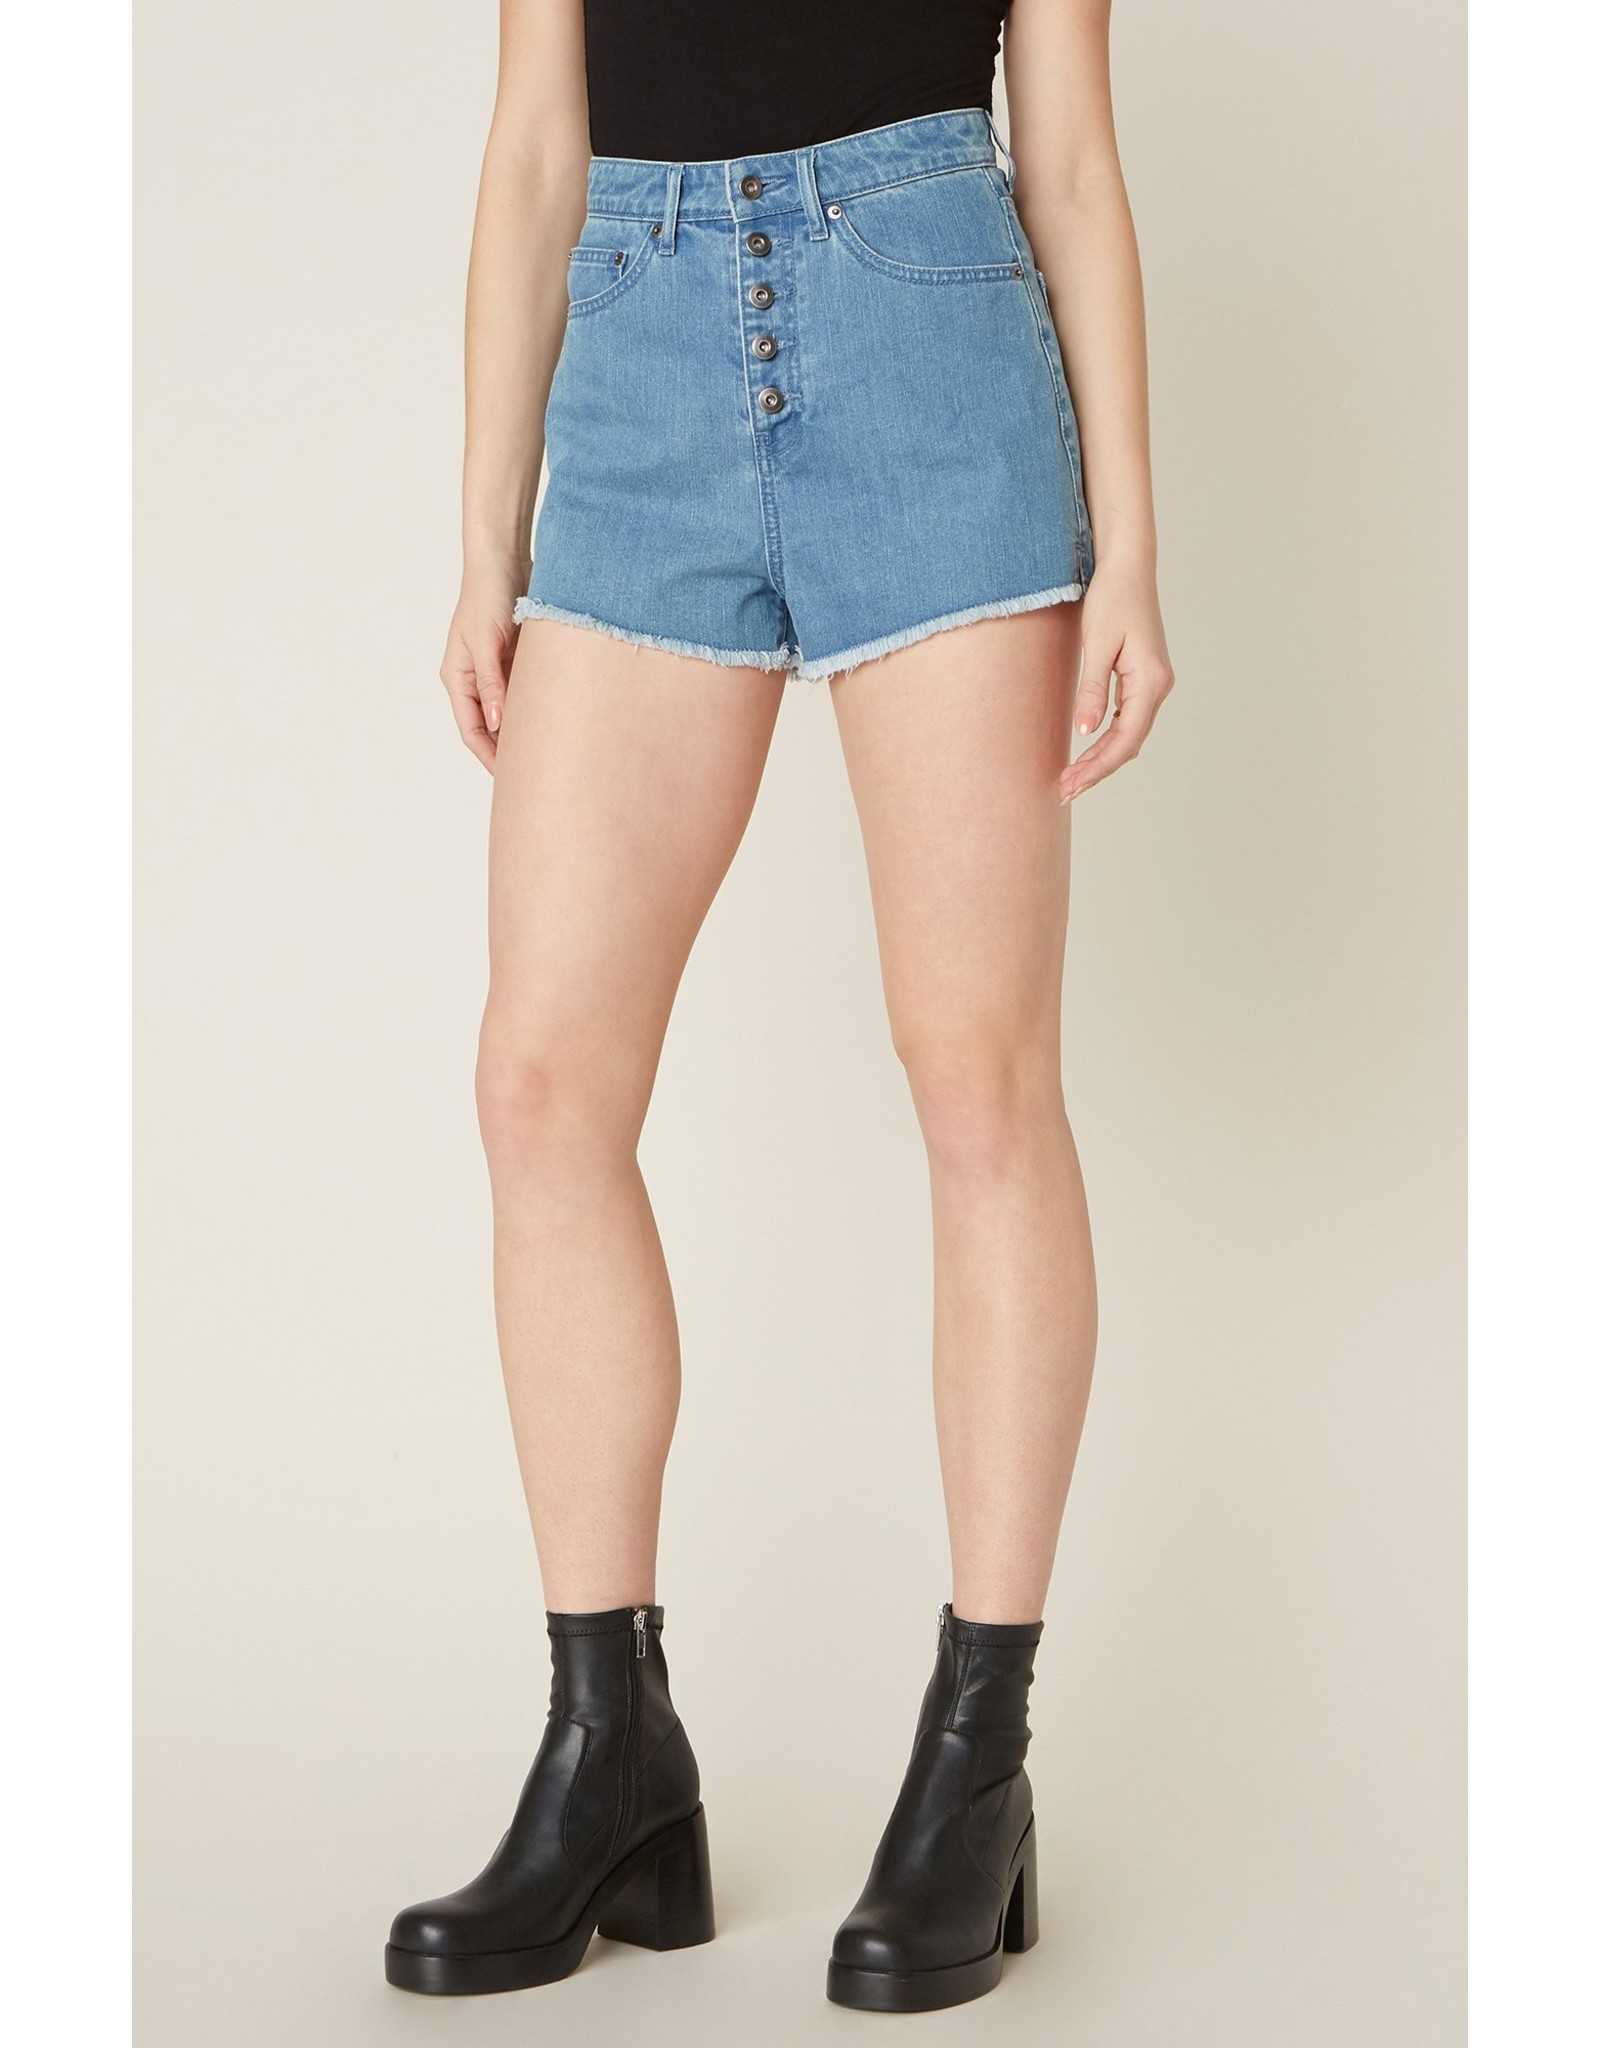 JACK BY BB DAKOTA DOWN TO BUSINESS BUTTON FLY SHORTS